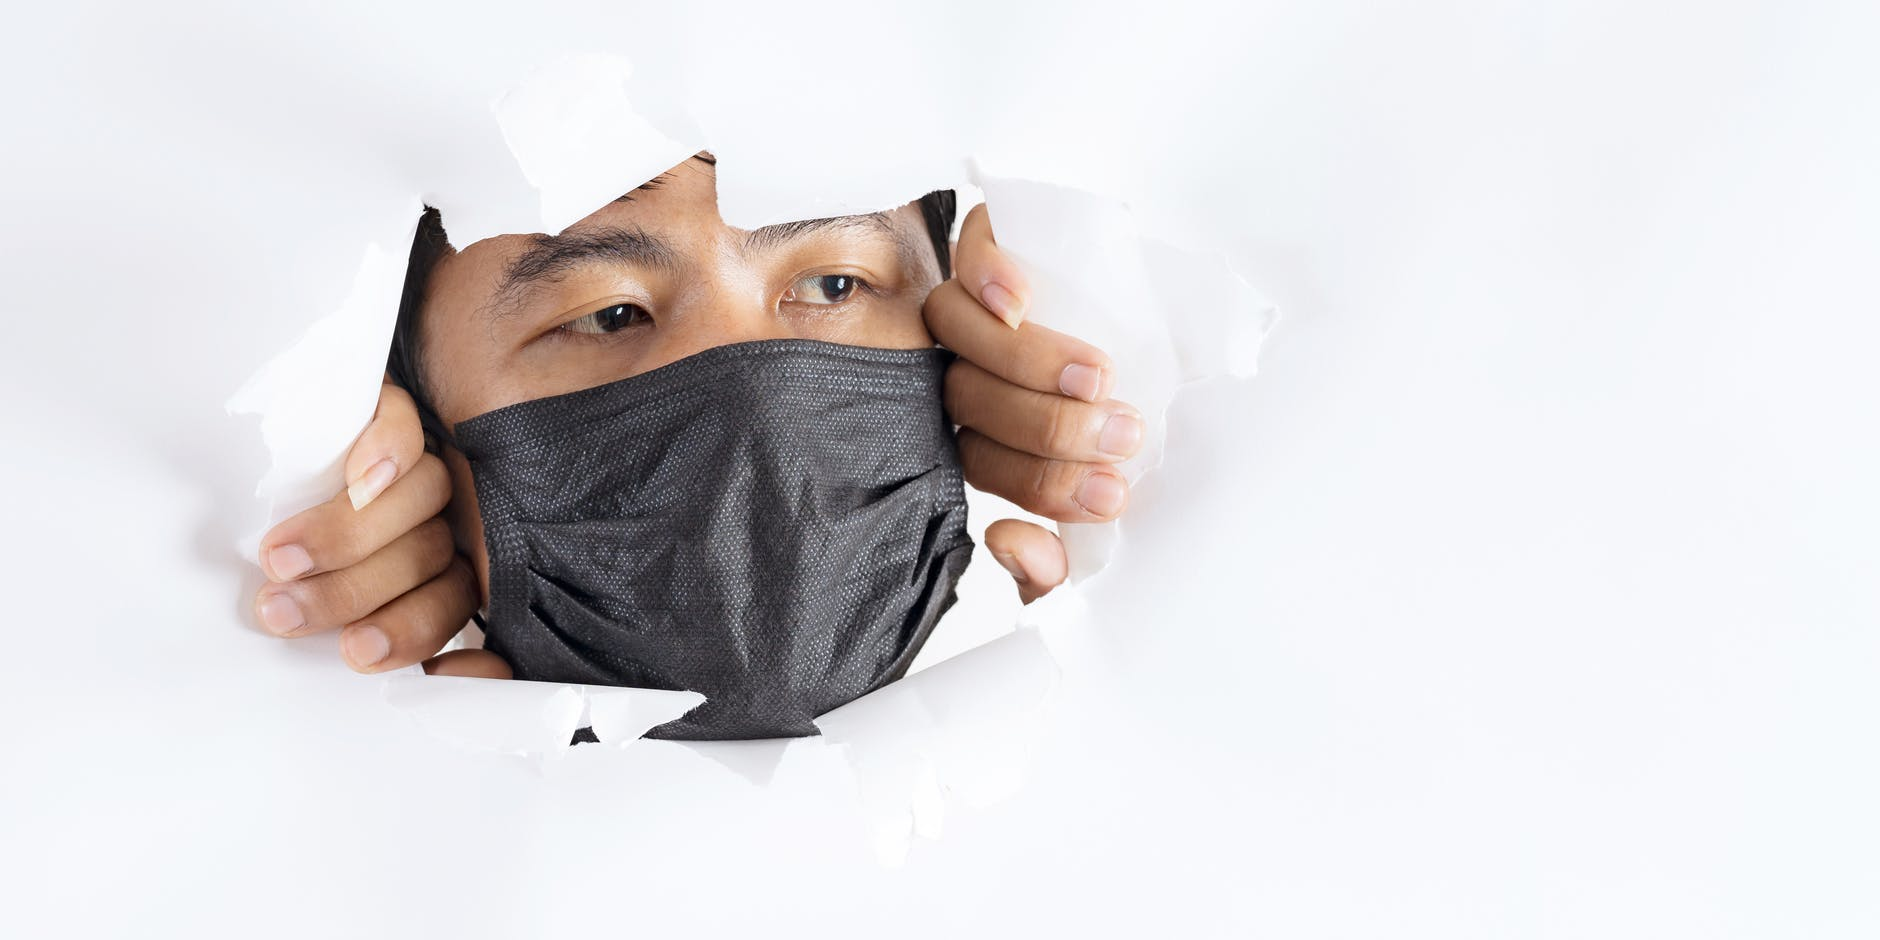 crop attentive man in face mask behind torn paper wall